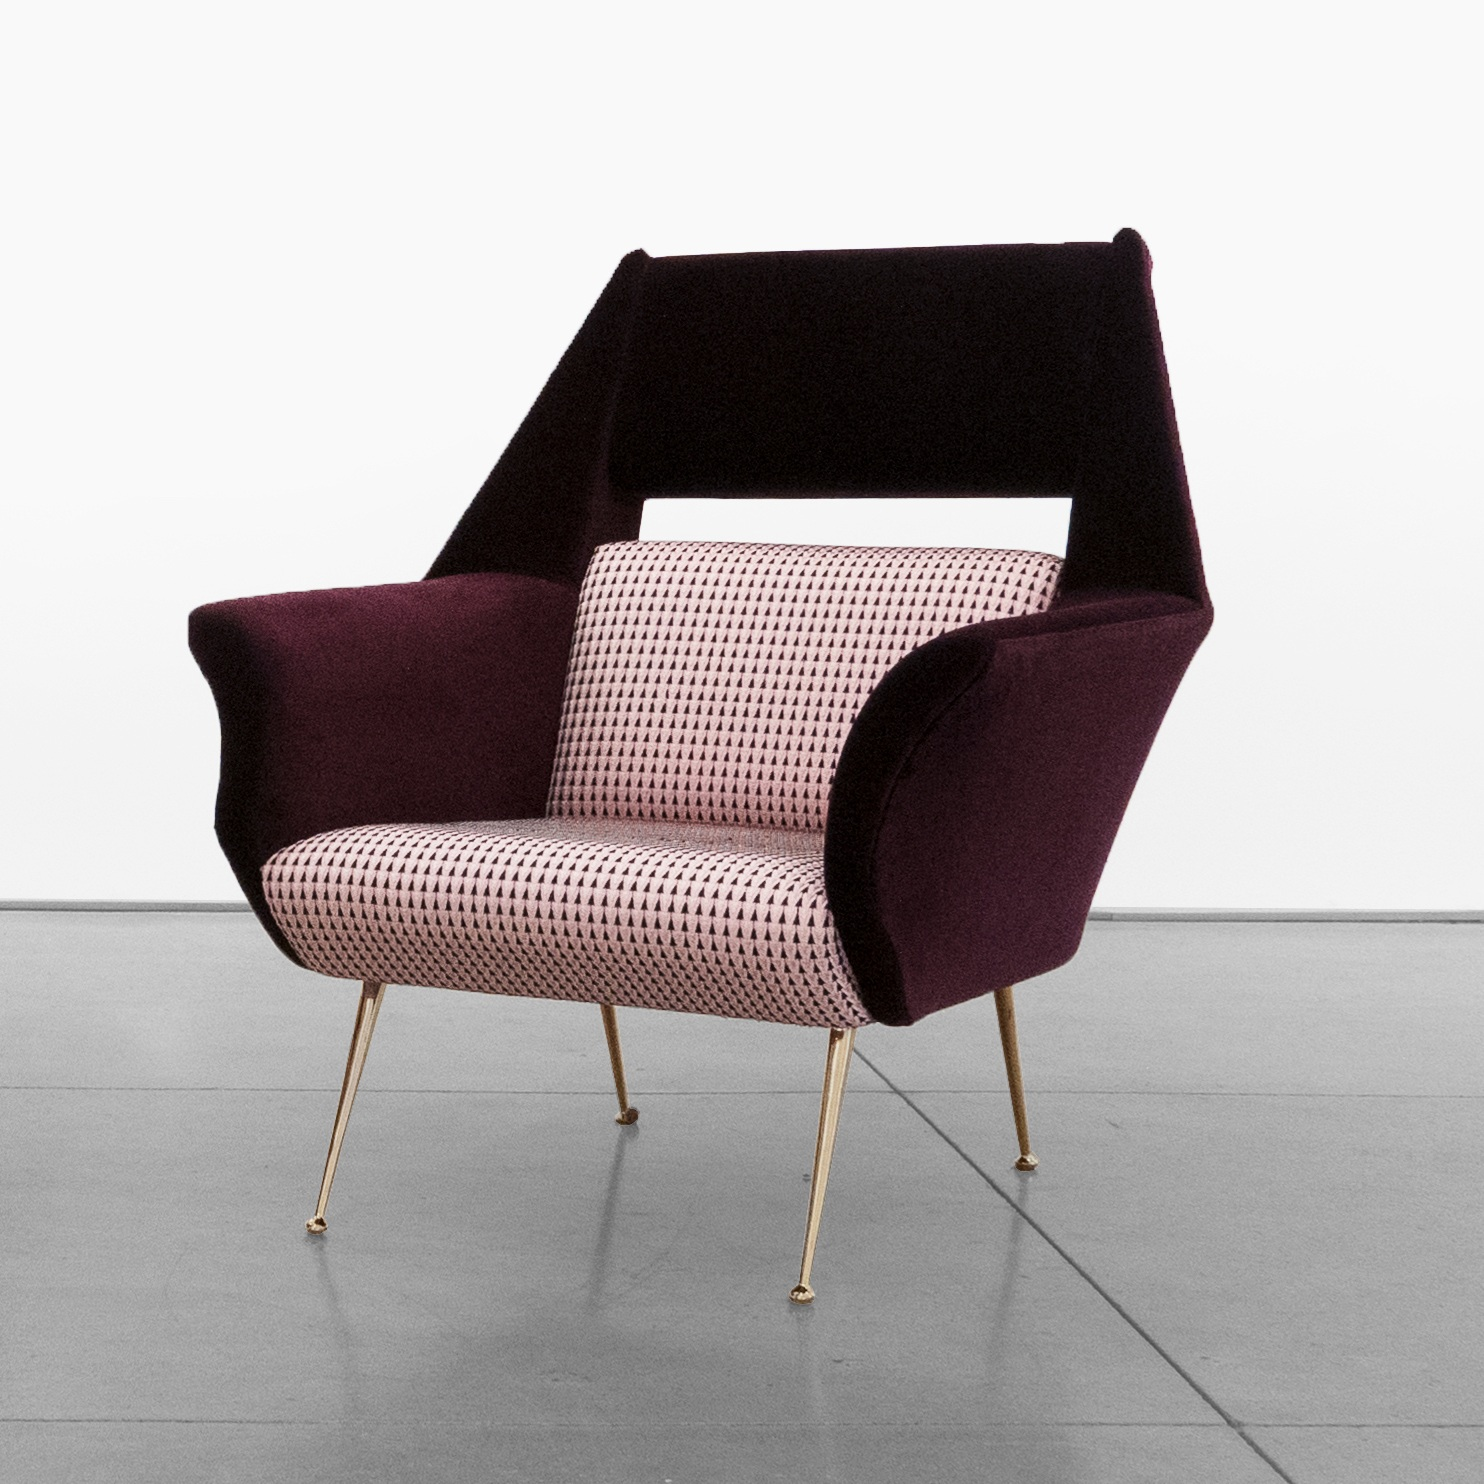 gigi radice  chair for minotti $6,250